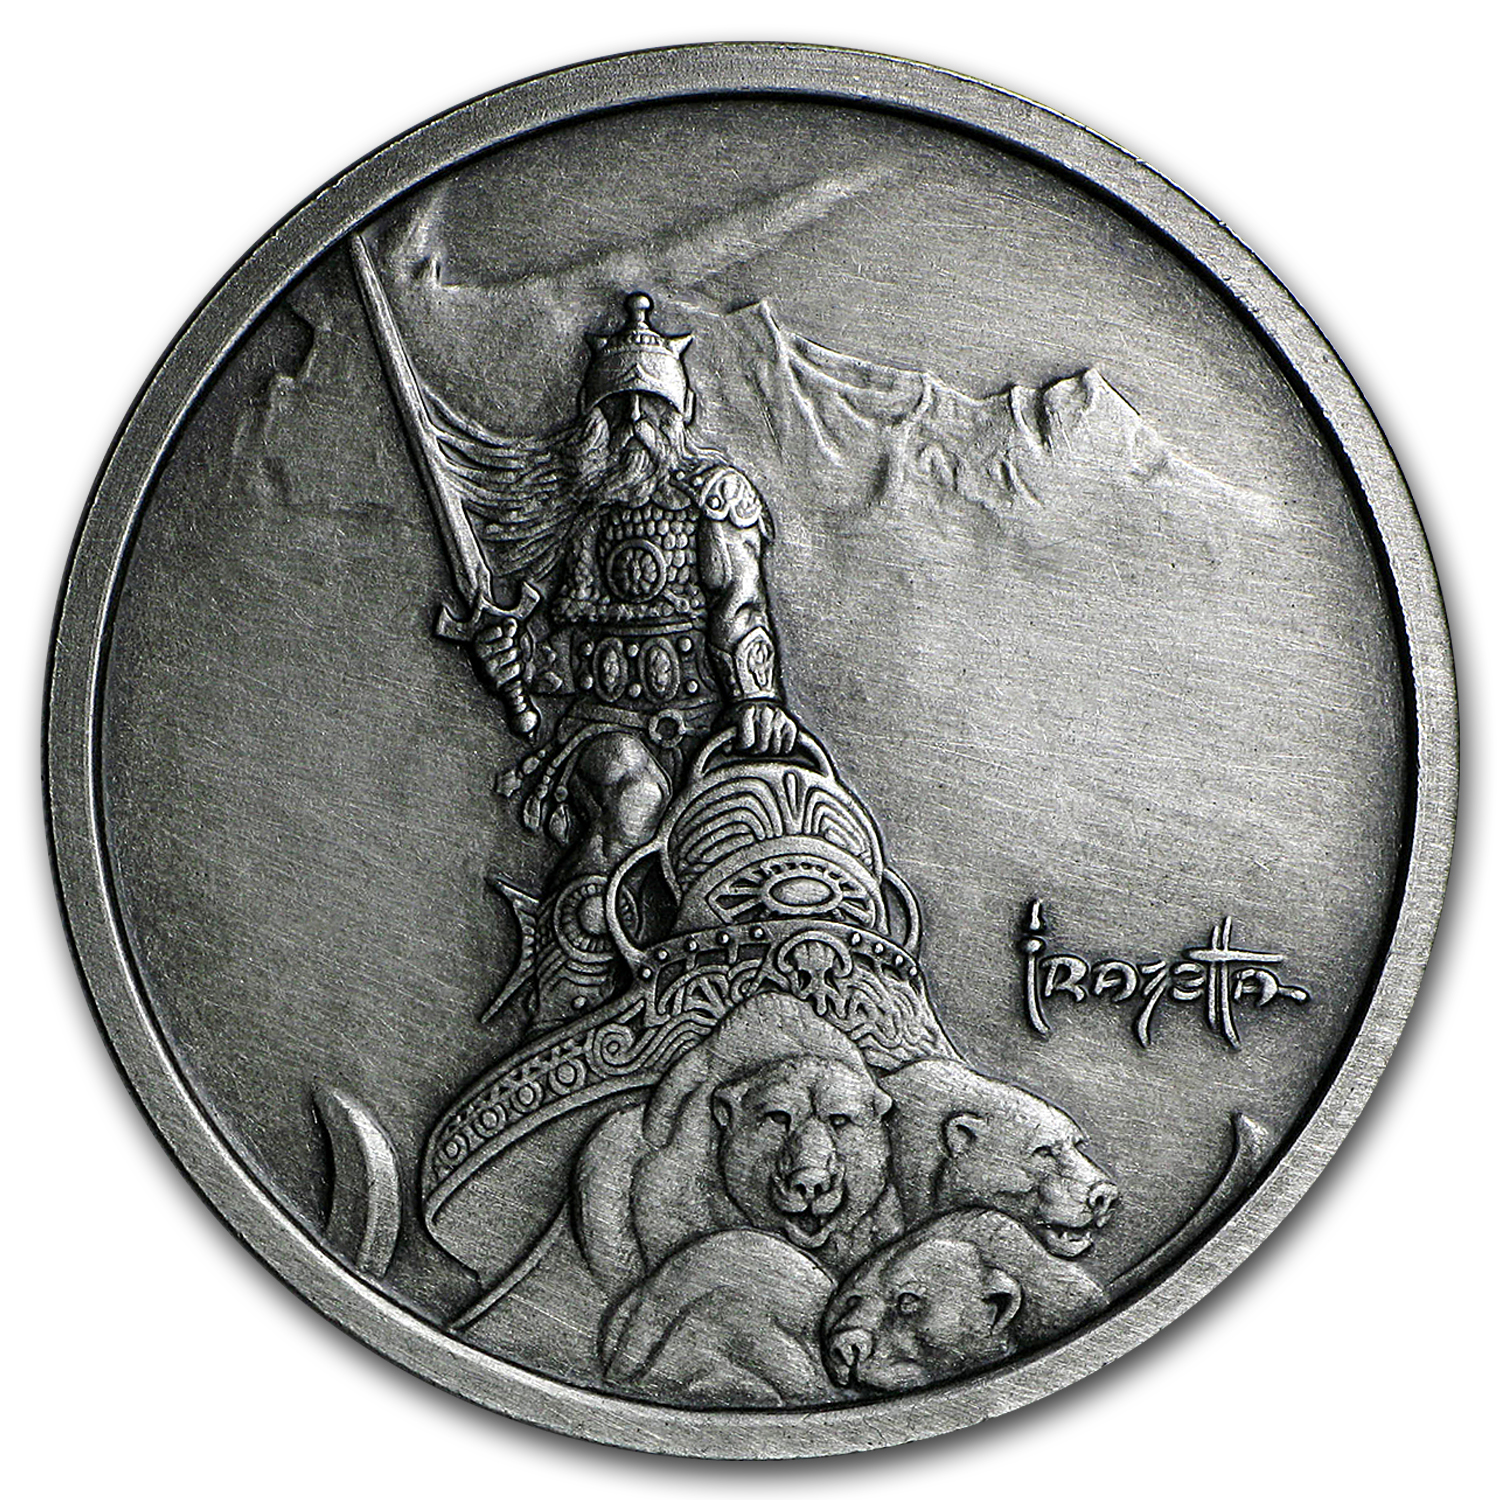 1 oz Silver Antique Round - Frank Frazetta (Silver Warrior)